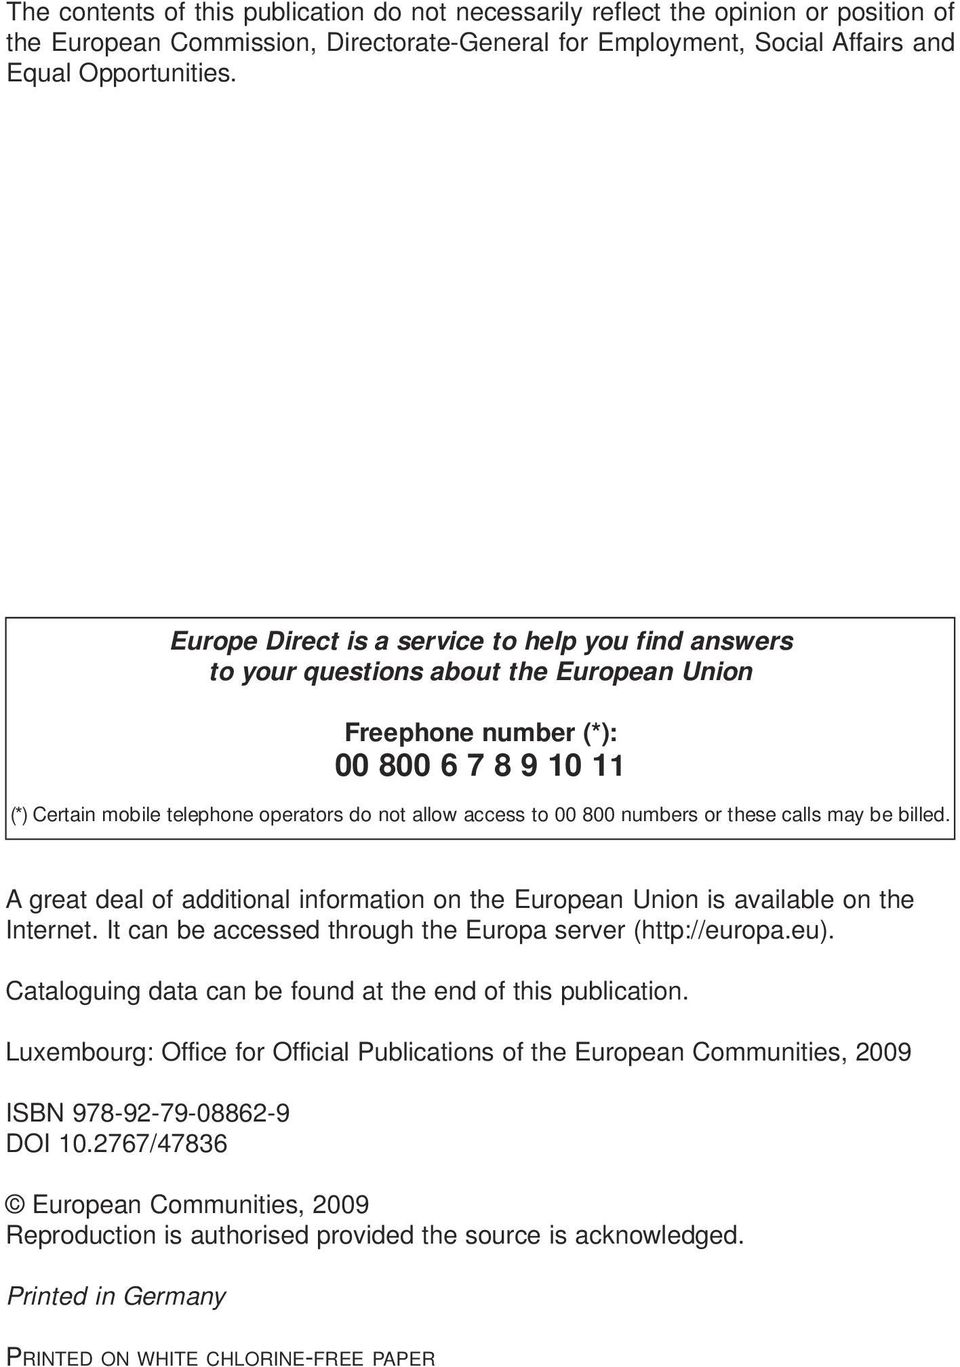 00 800 numbers or these calls may be billed. A great deal of additional information on the European Union is available on the Internet. It can be accessed through the Europa server (http://europa.eu).